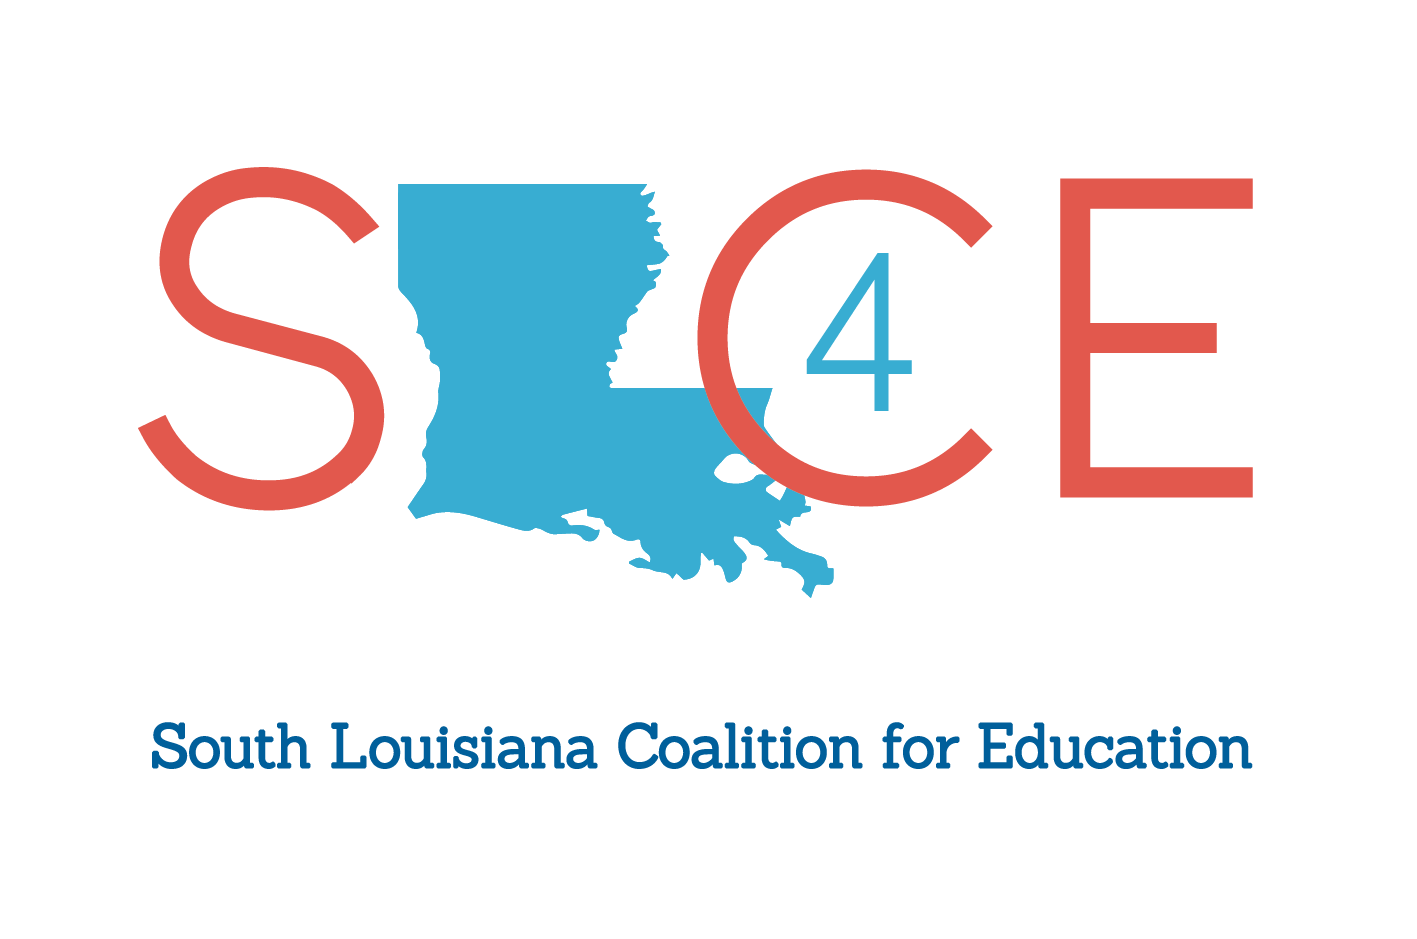 South Louisiana Coalition for Education